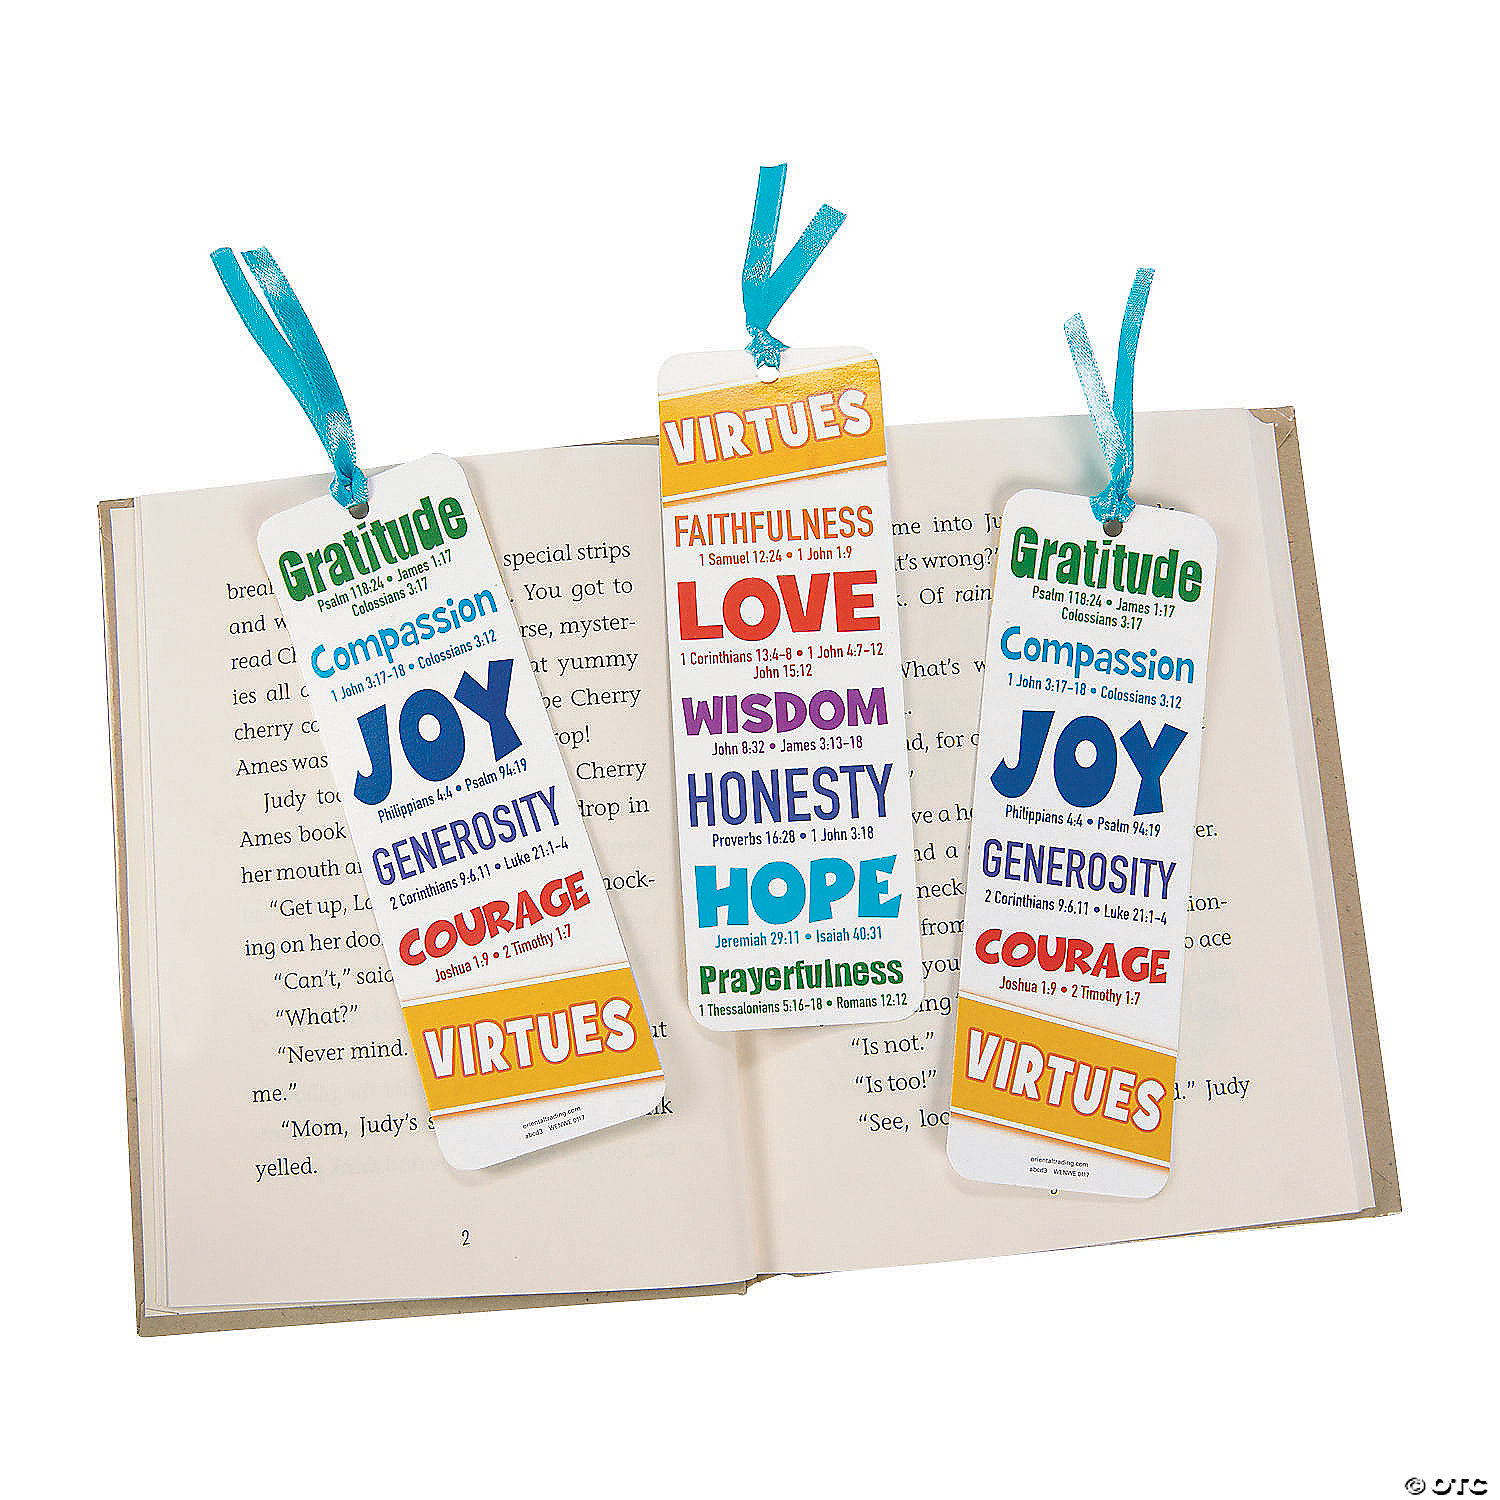 12 Virtues virtues bookmarks for kids